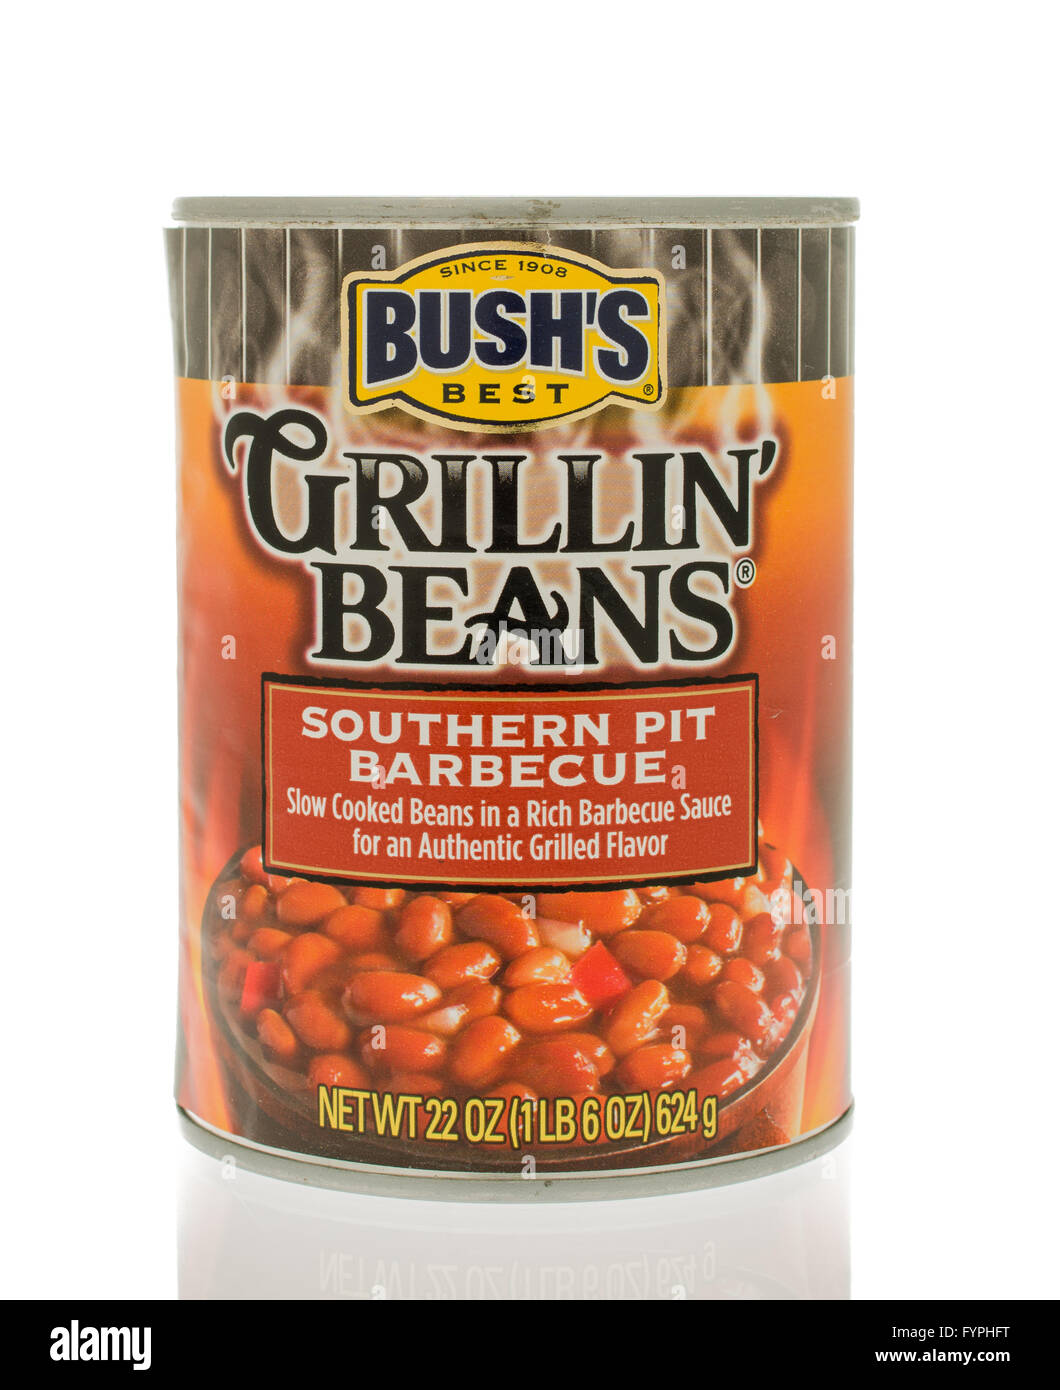 Winneconne, WI - 18 Nov 2015:  A can of Bush's grillin' beans in southern pit barbecue flavor. - Stock Image